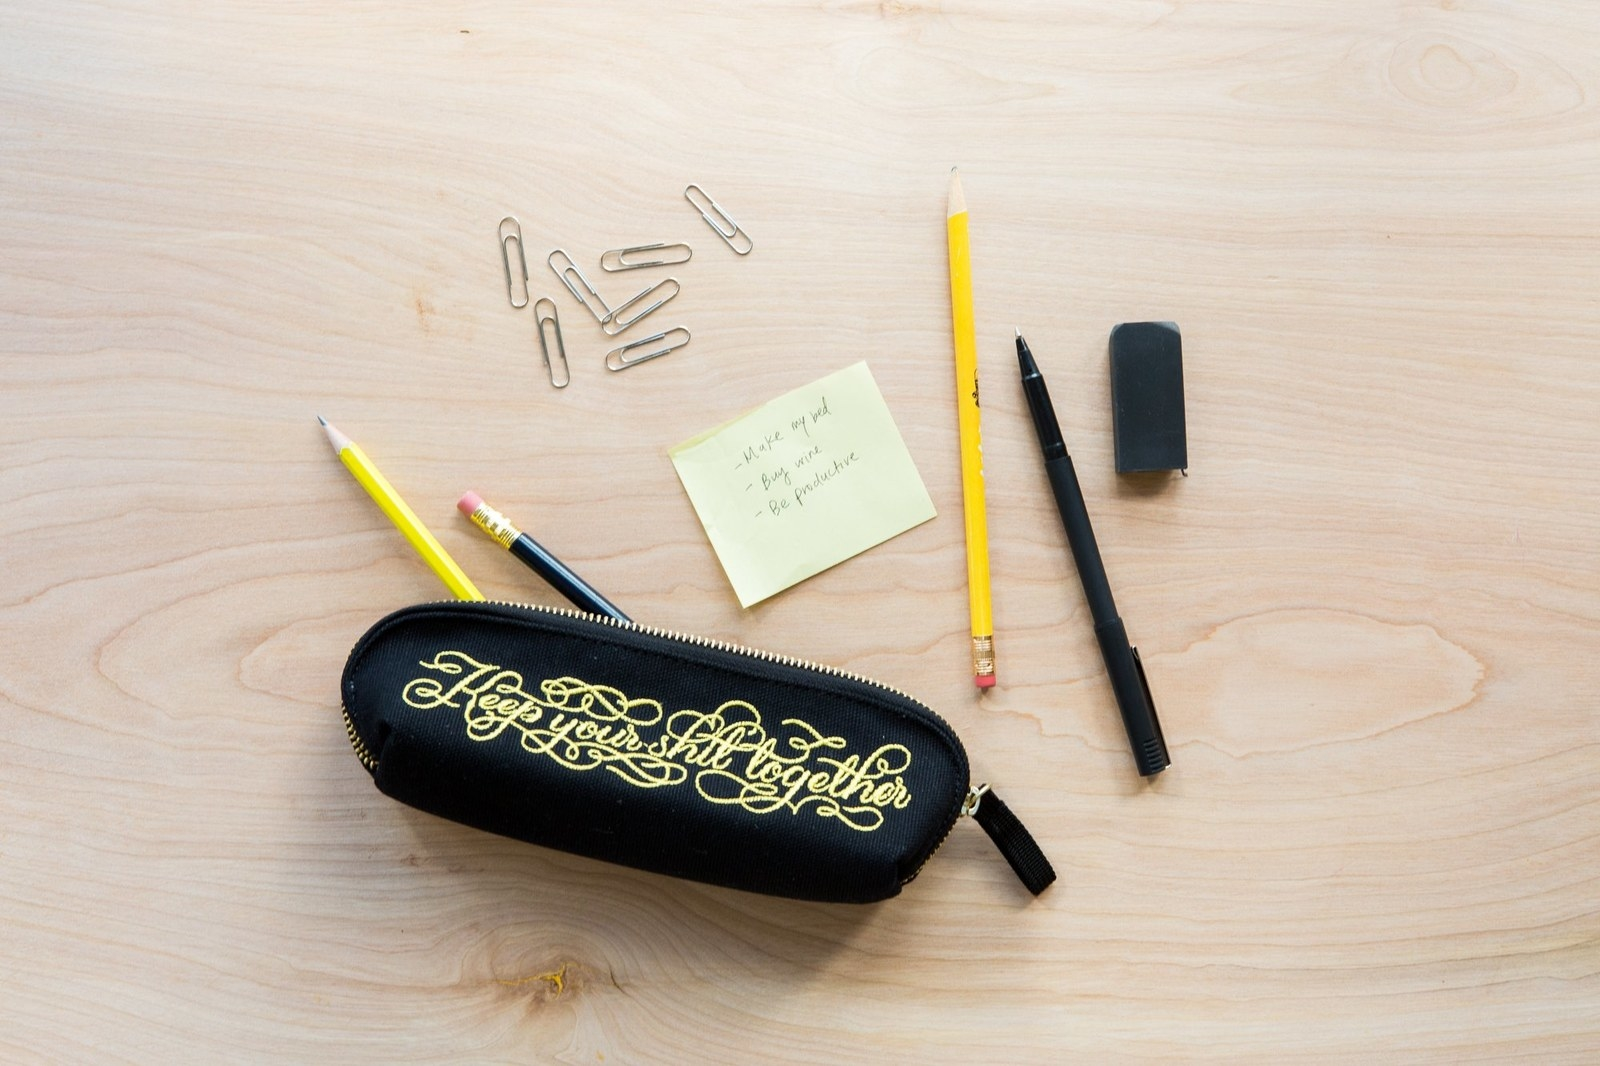 """Keep pens, pencils, erasers, basically all of your shit (just not the literal kind) together in this handy bag (which reads """"Keep your shit together,"""" for anyone struggling to read the ~fancy~ font).Get it from Amazon for $12.95."""